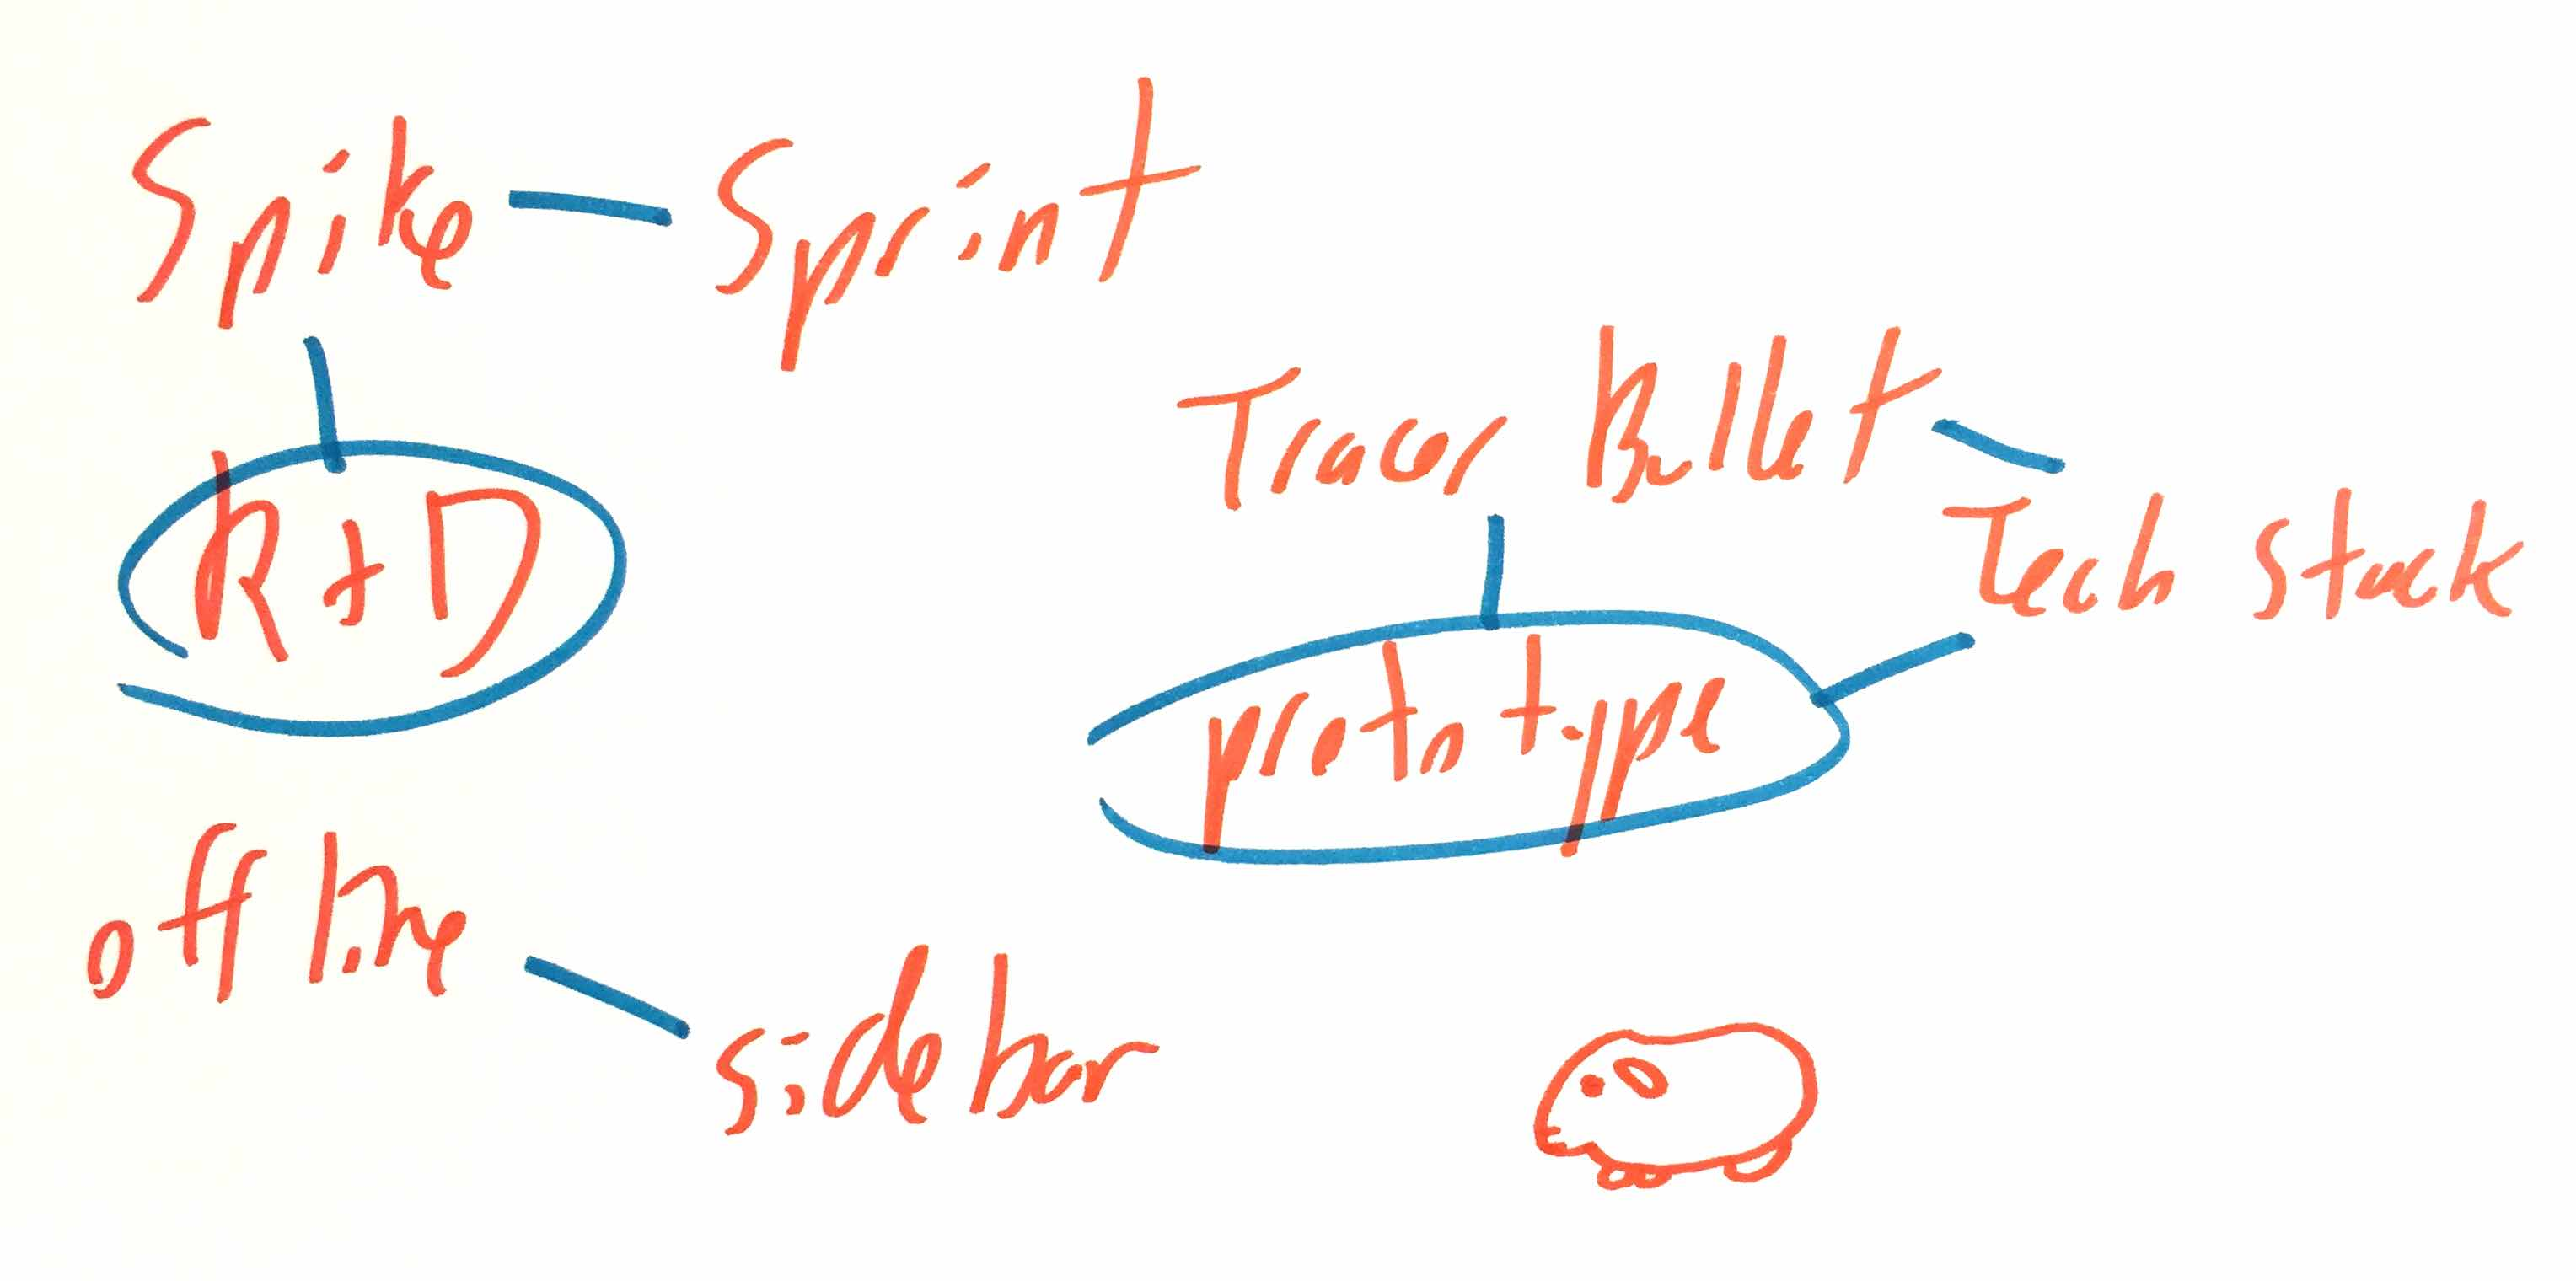 A rough whiteboard sketch with some of the terminology featured in the article.